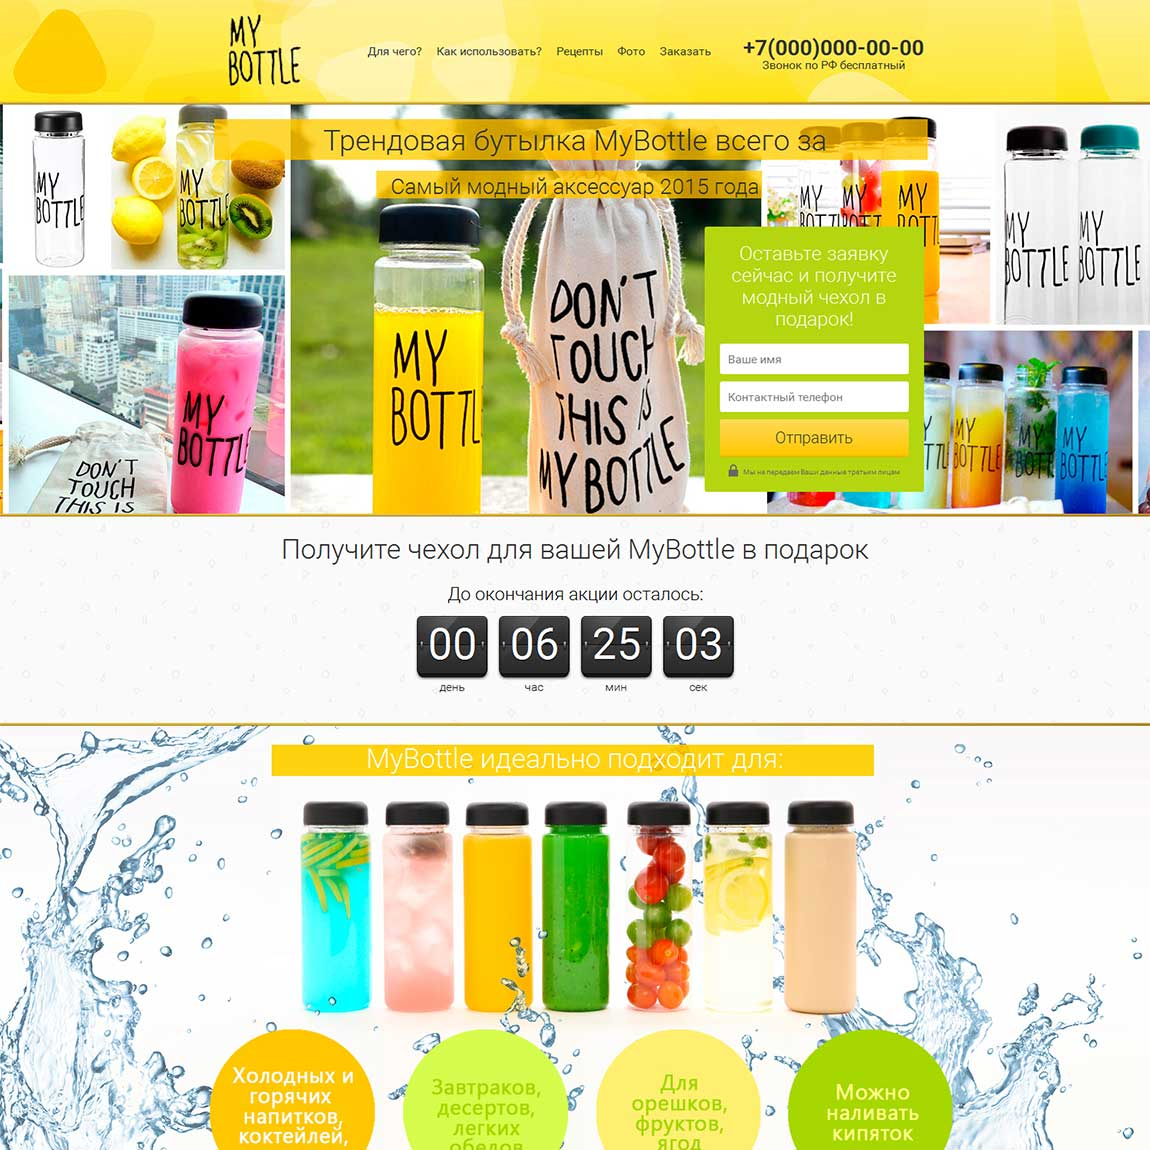 Landing Page My Bottle Boutle 001